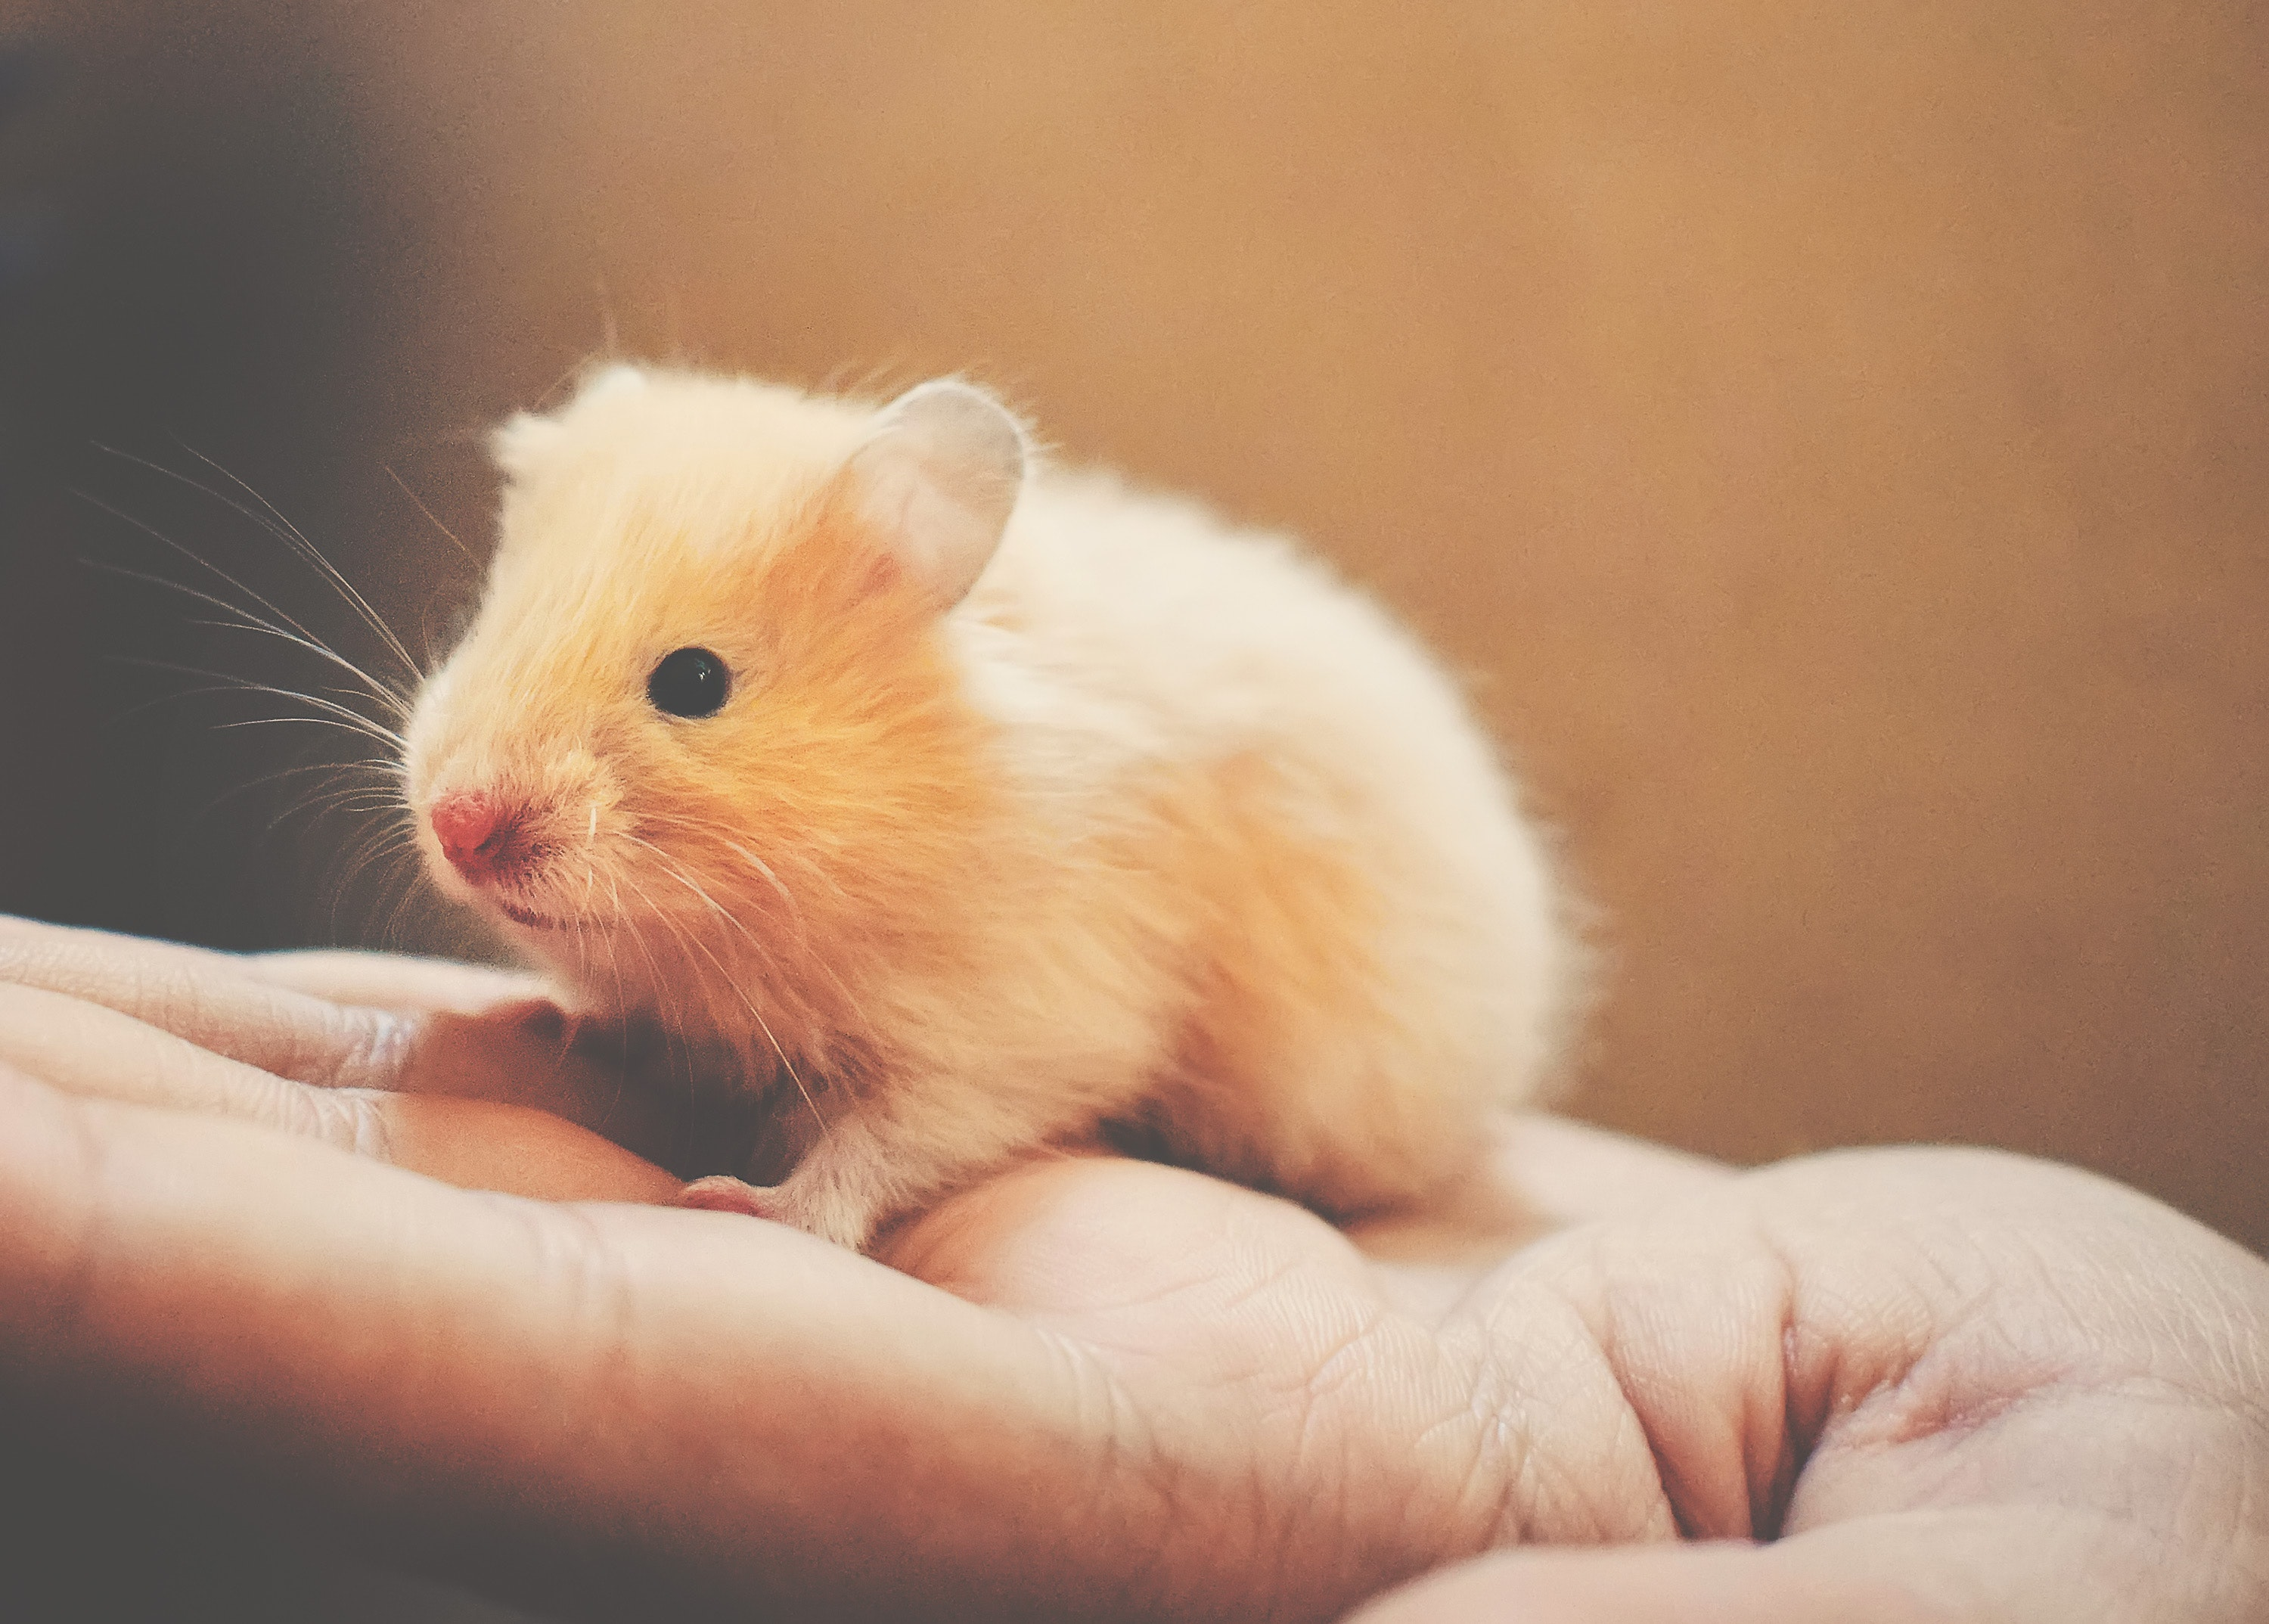 Shallow focus photography of white rodent